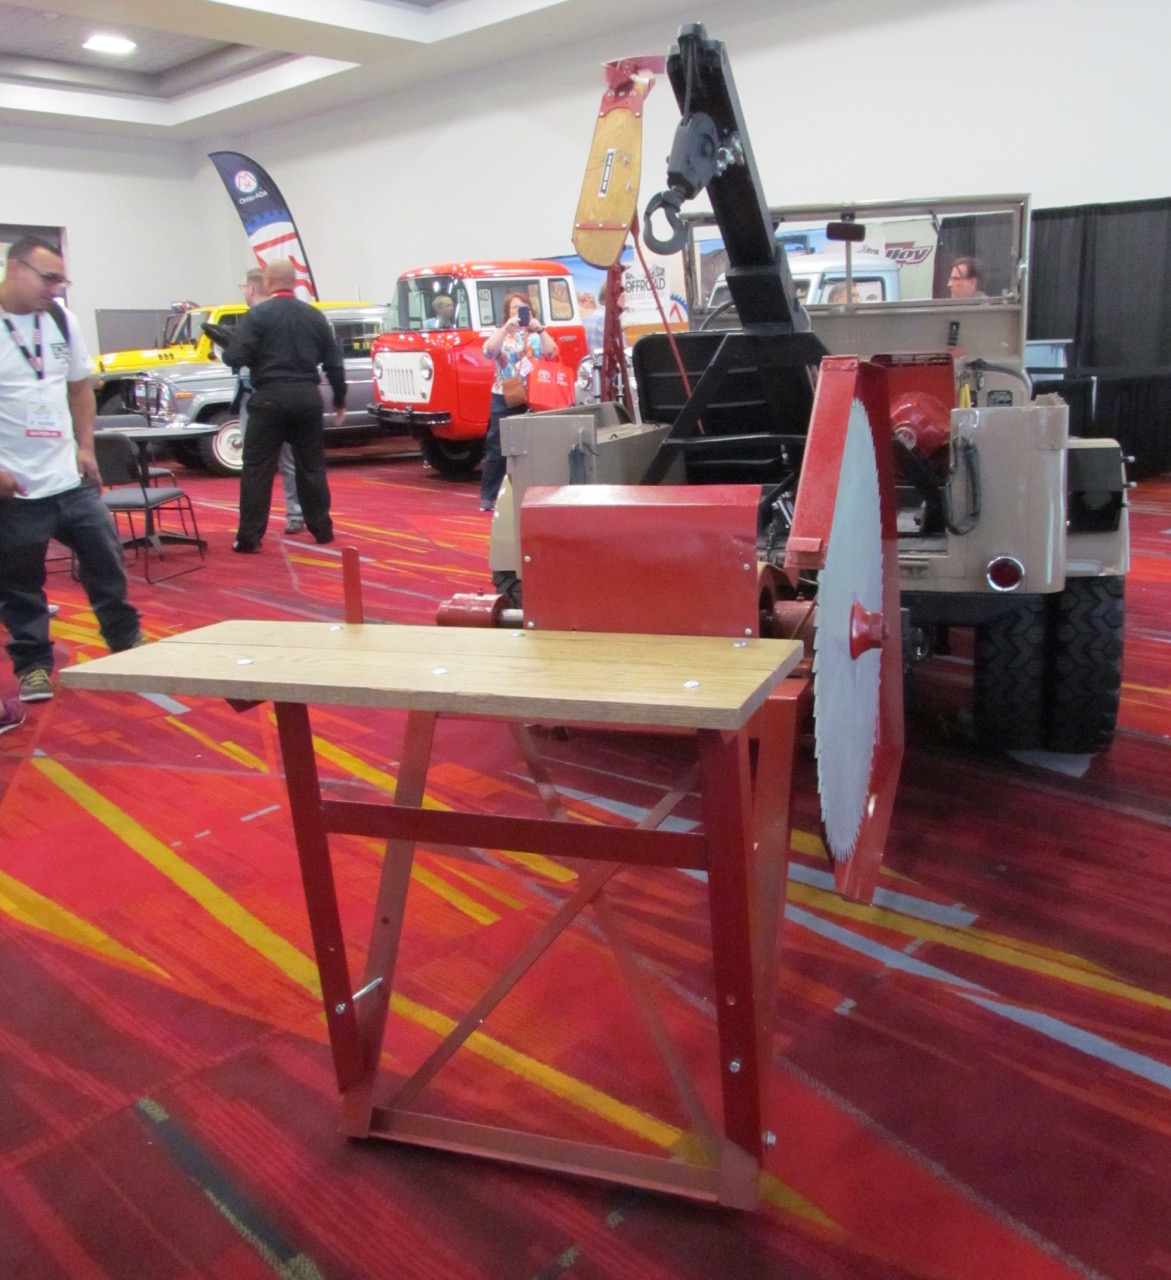 Special equipment includes tow bar, saw and table